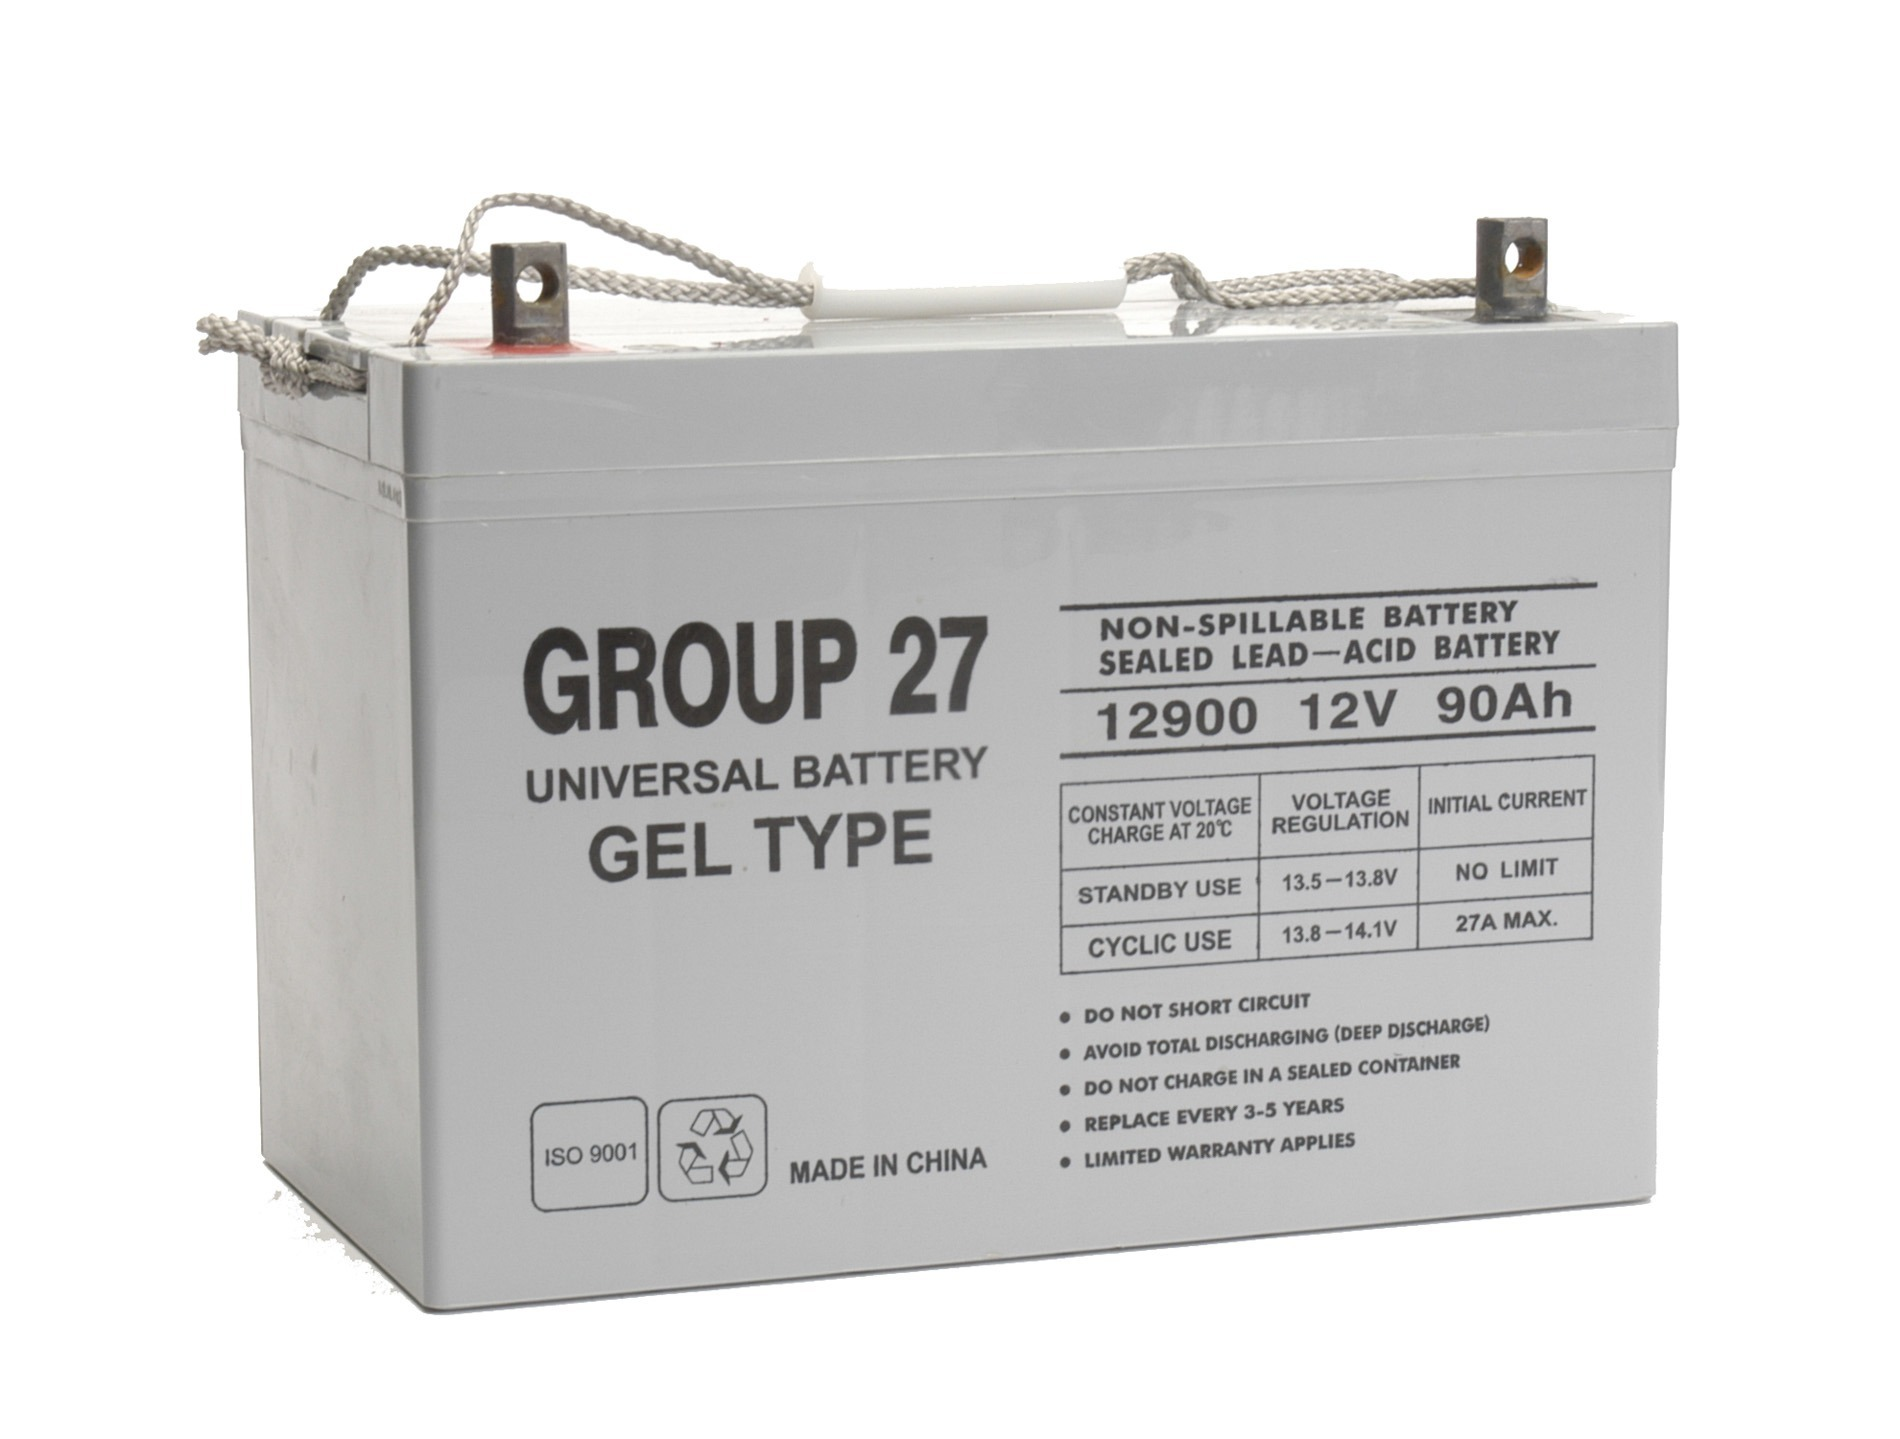 12v 90ah (Group 27) Gel Battery for Advance SC351 Scrubber